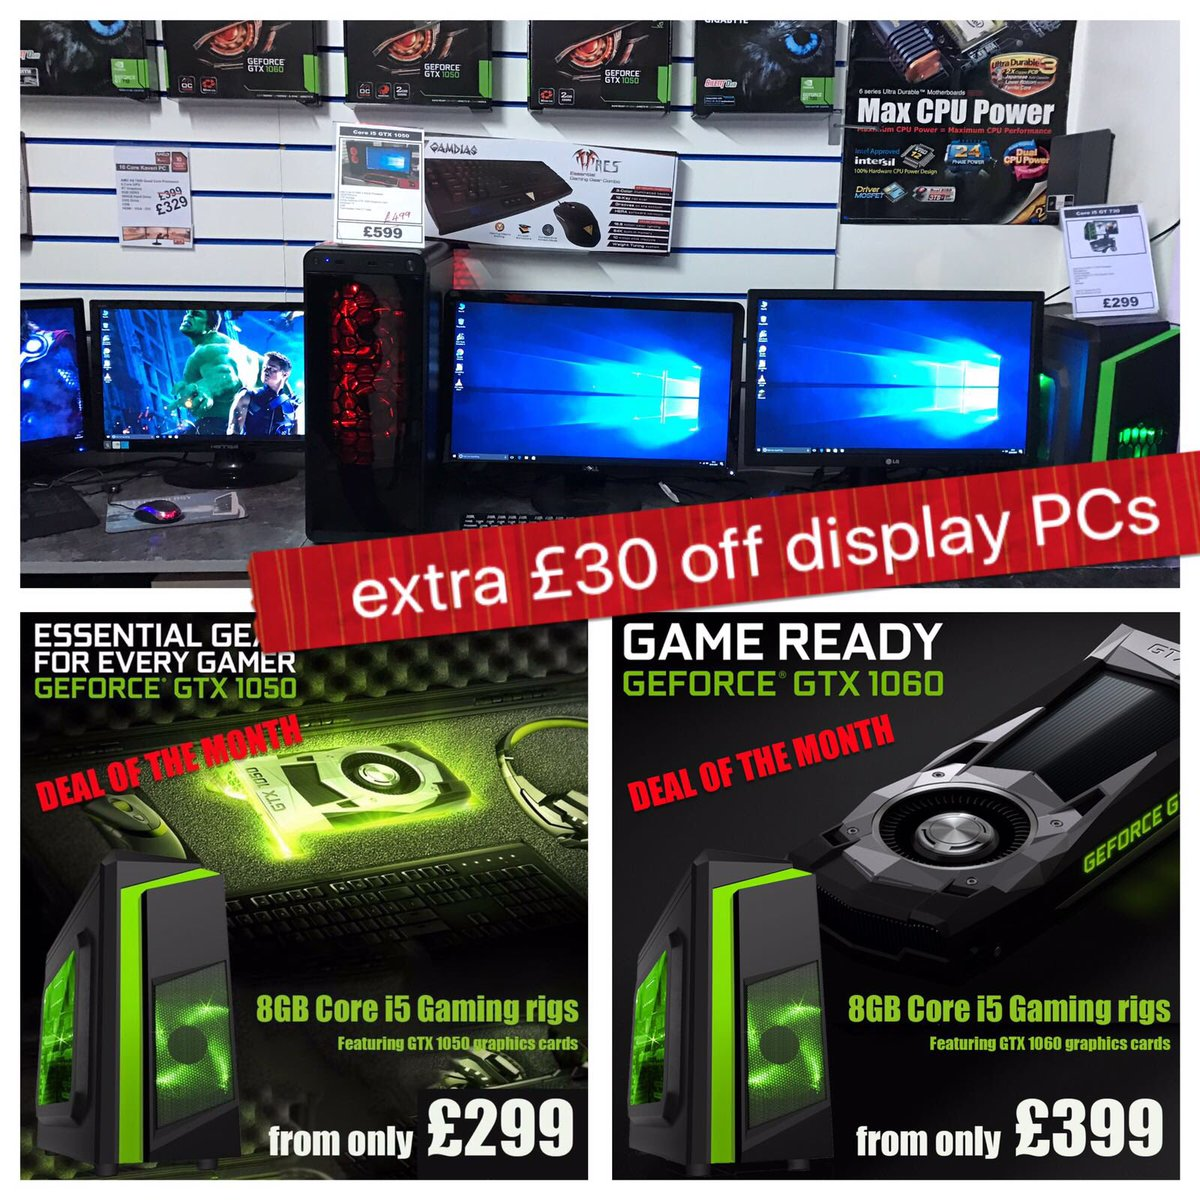 #Gaming Sale #Sunday 12-5pm Core i5 GTX 1050 systems from £299 AC #Technology 369 Edge Lane #Liverpool L7 9LQ<br>http://pic.twitter.com/G1JwfMTSkN